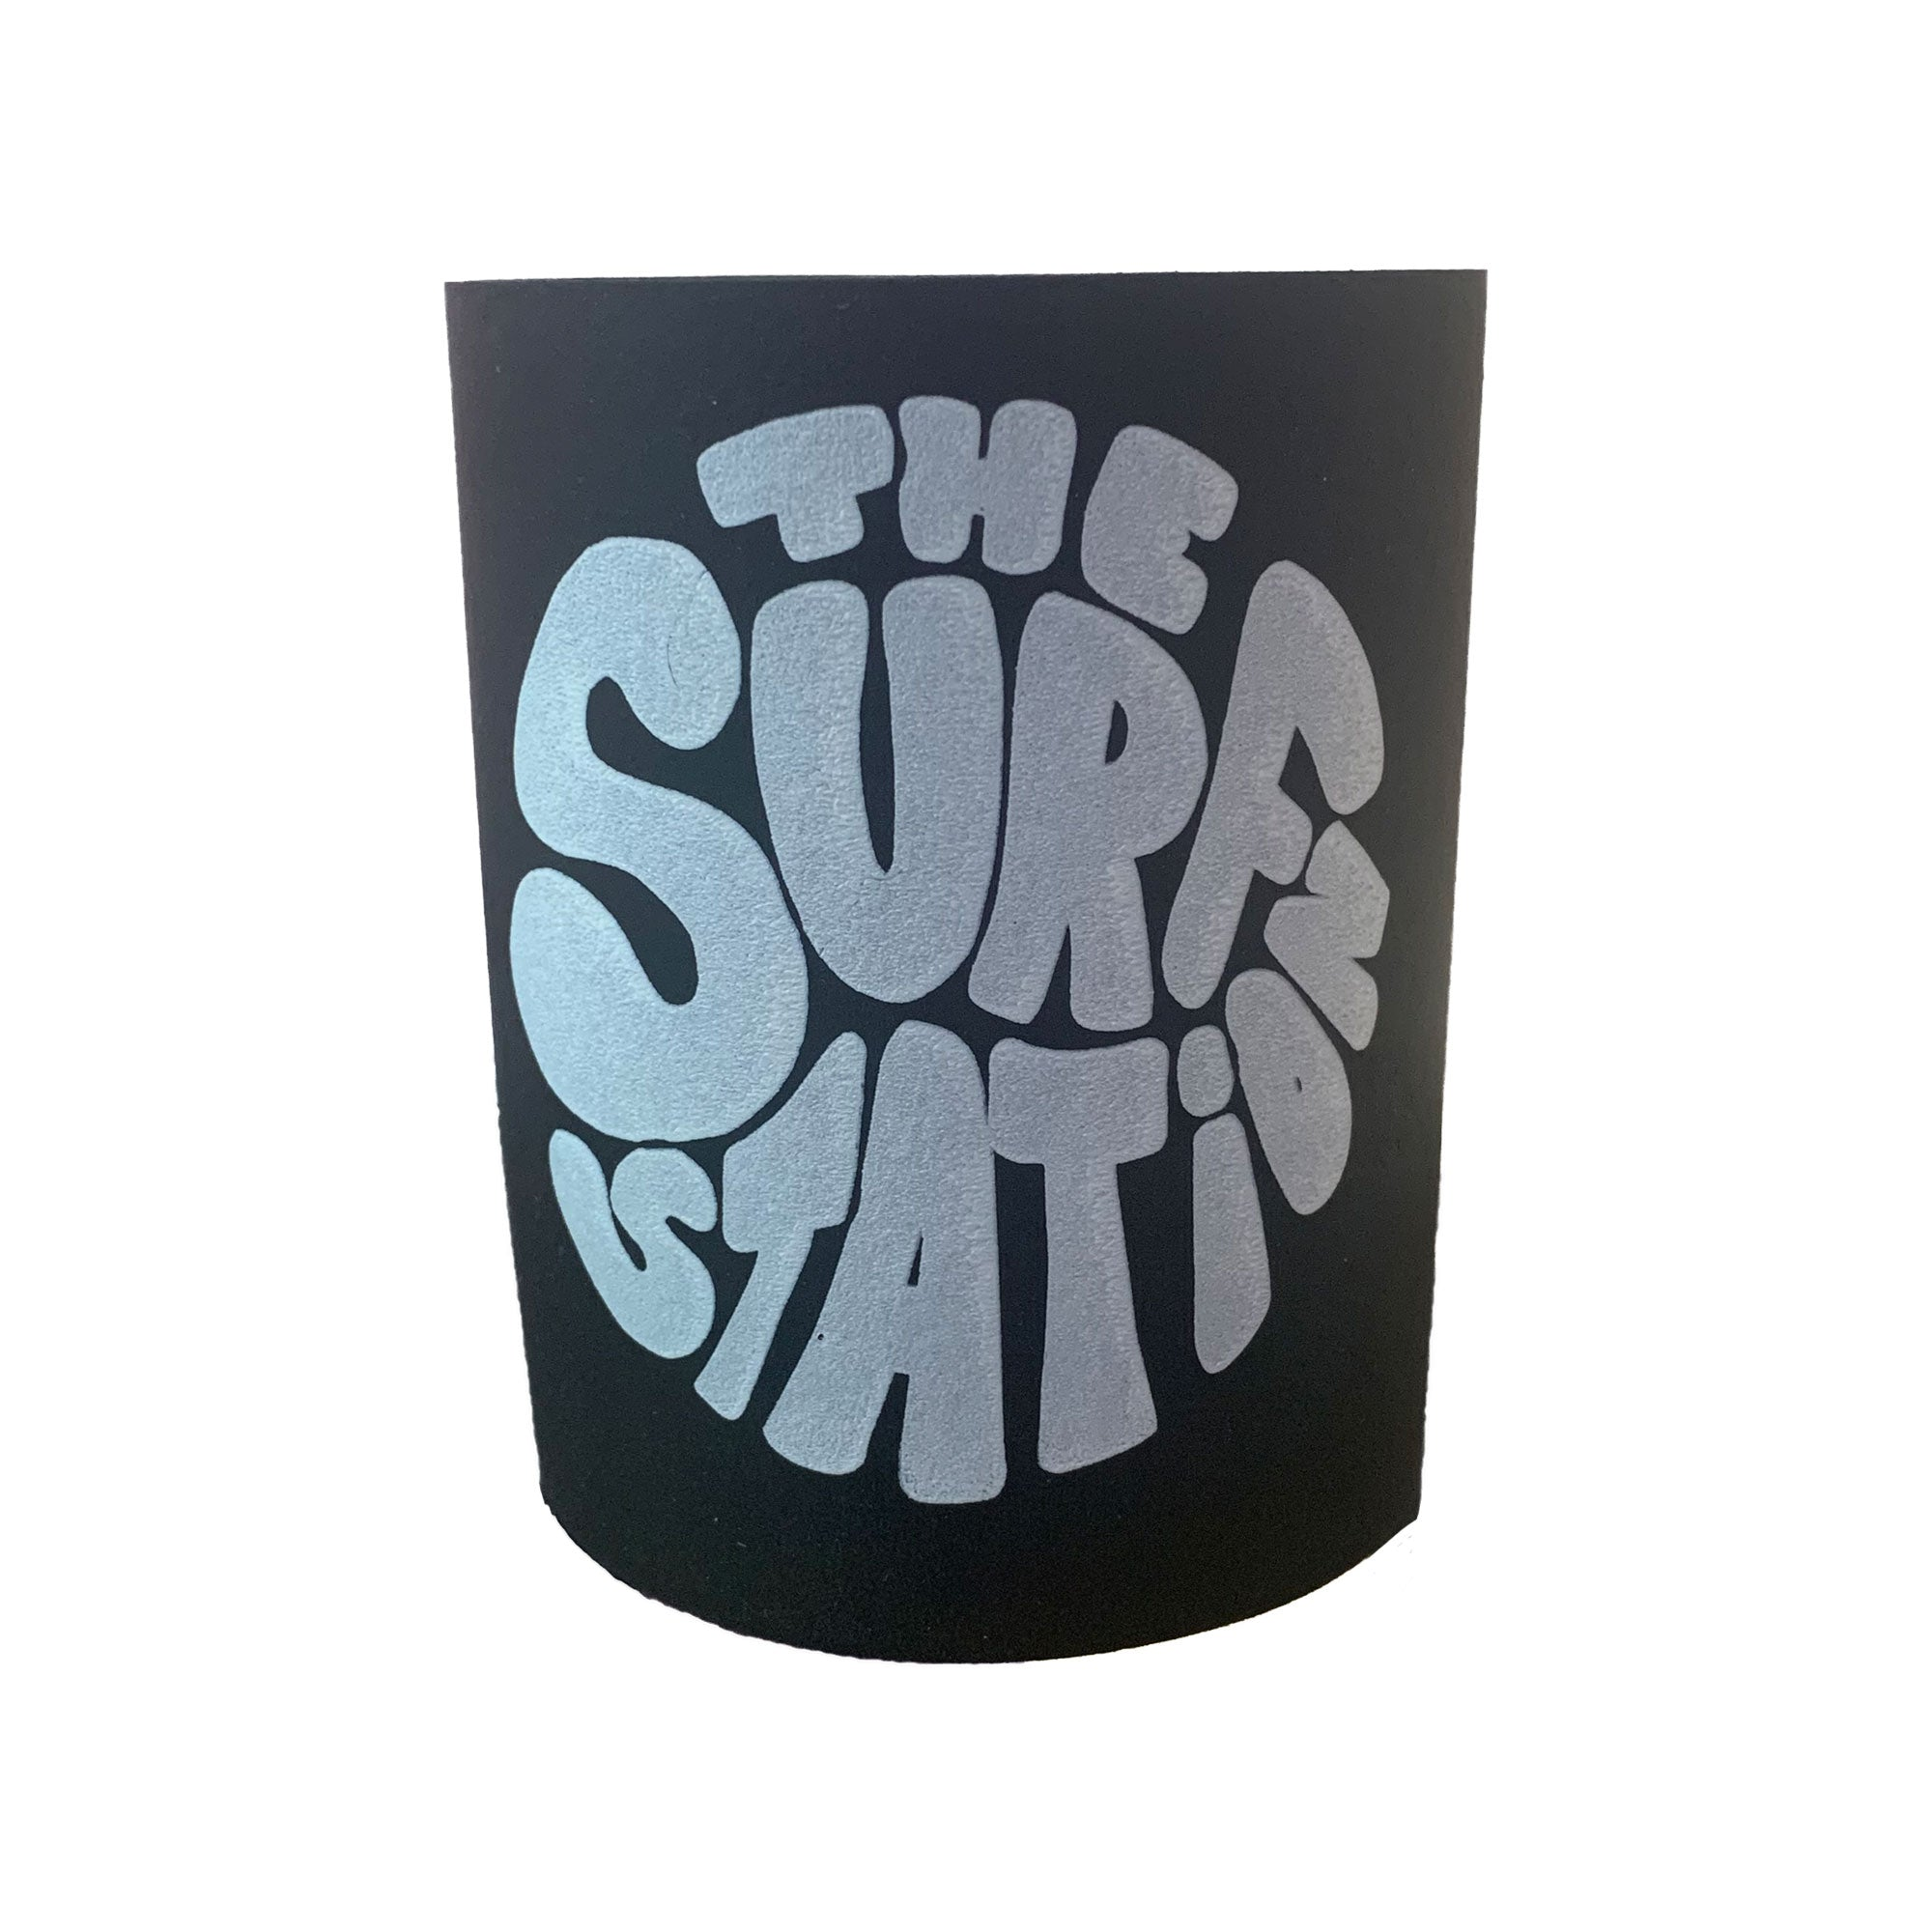 Surf Station Hippie Foam Koozie